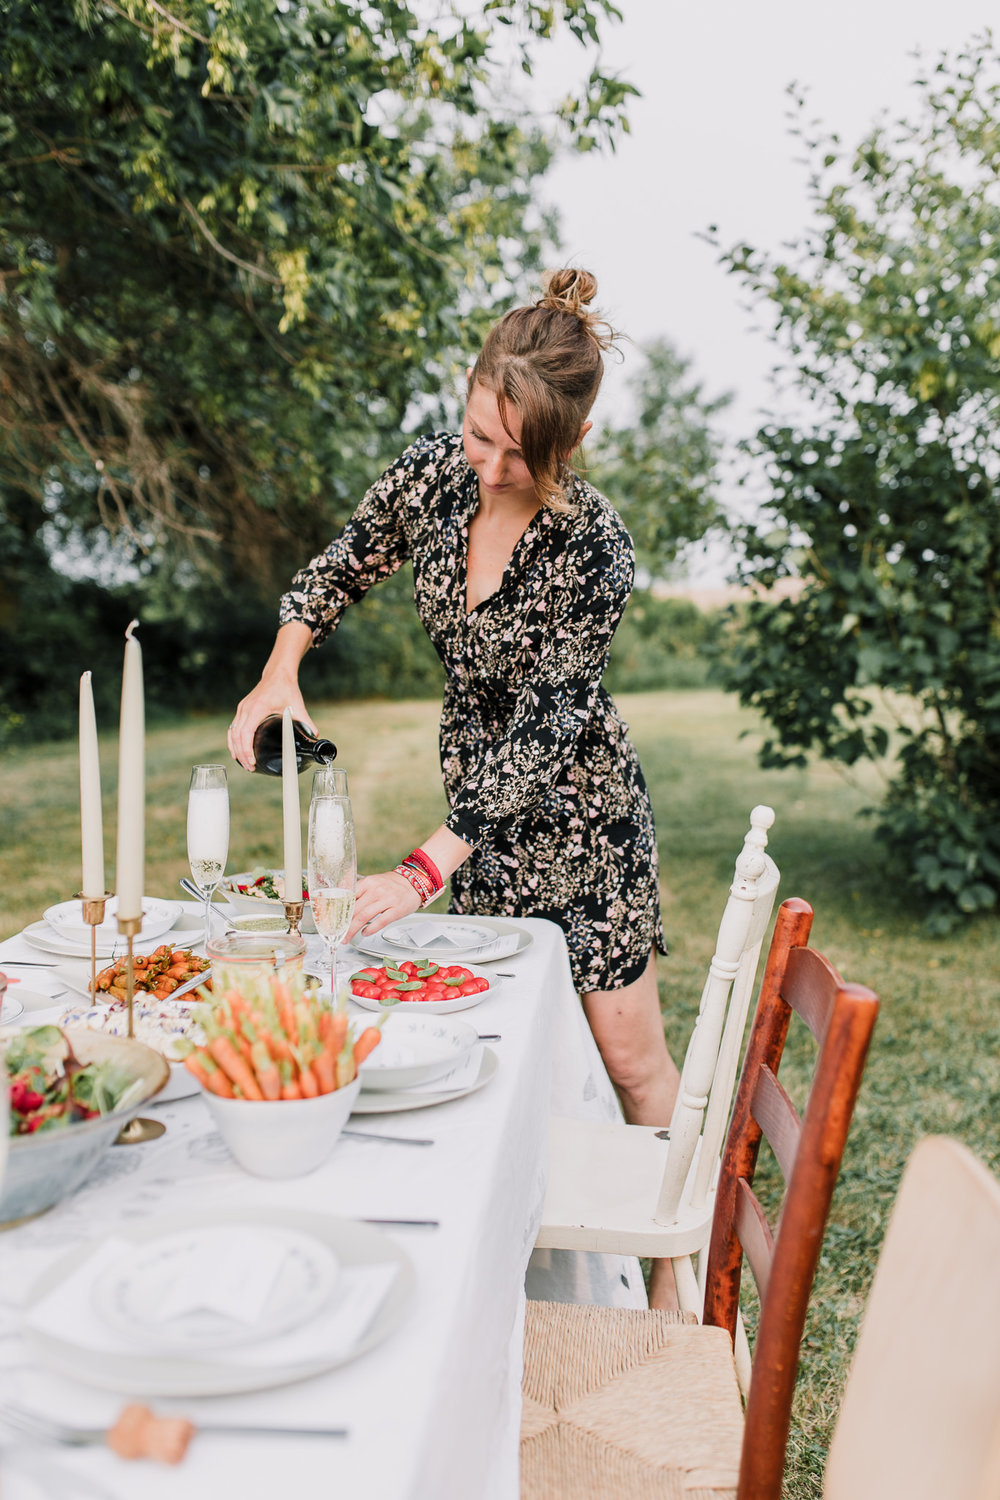 Aga of Herbologie | On farm dinner at Riverbend Gardens Alberta